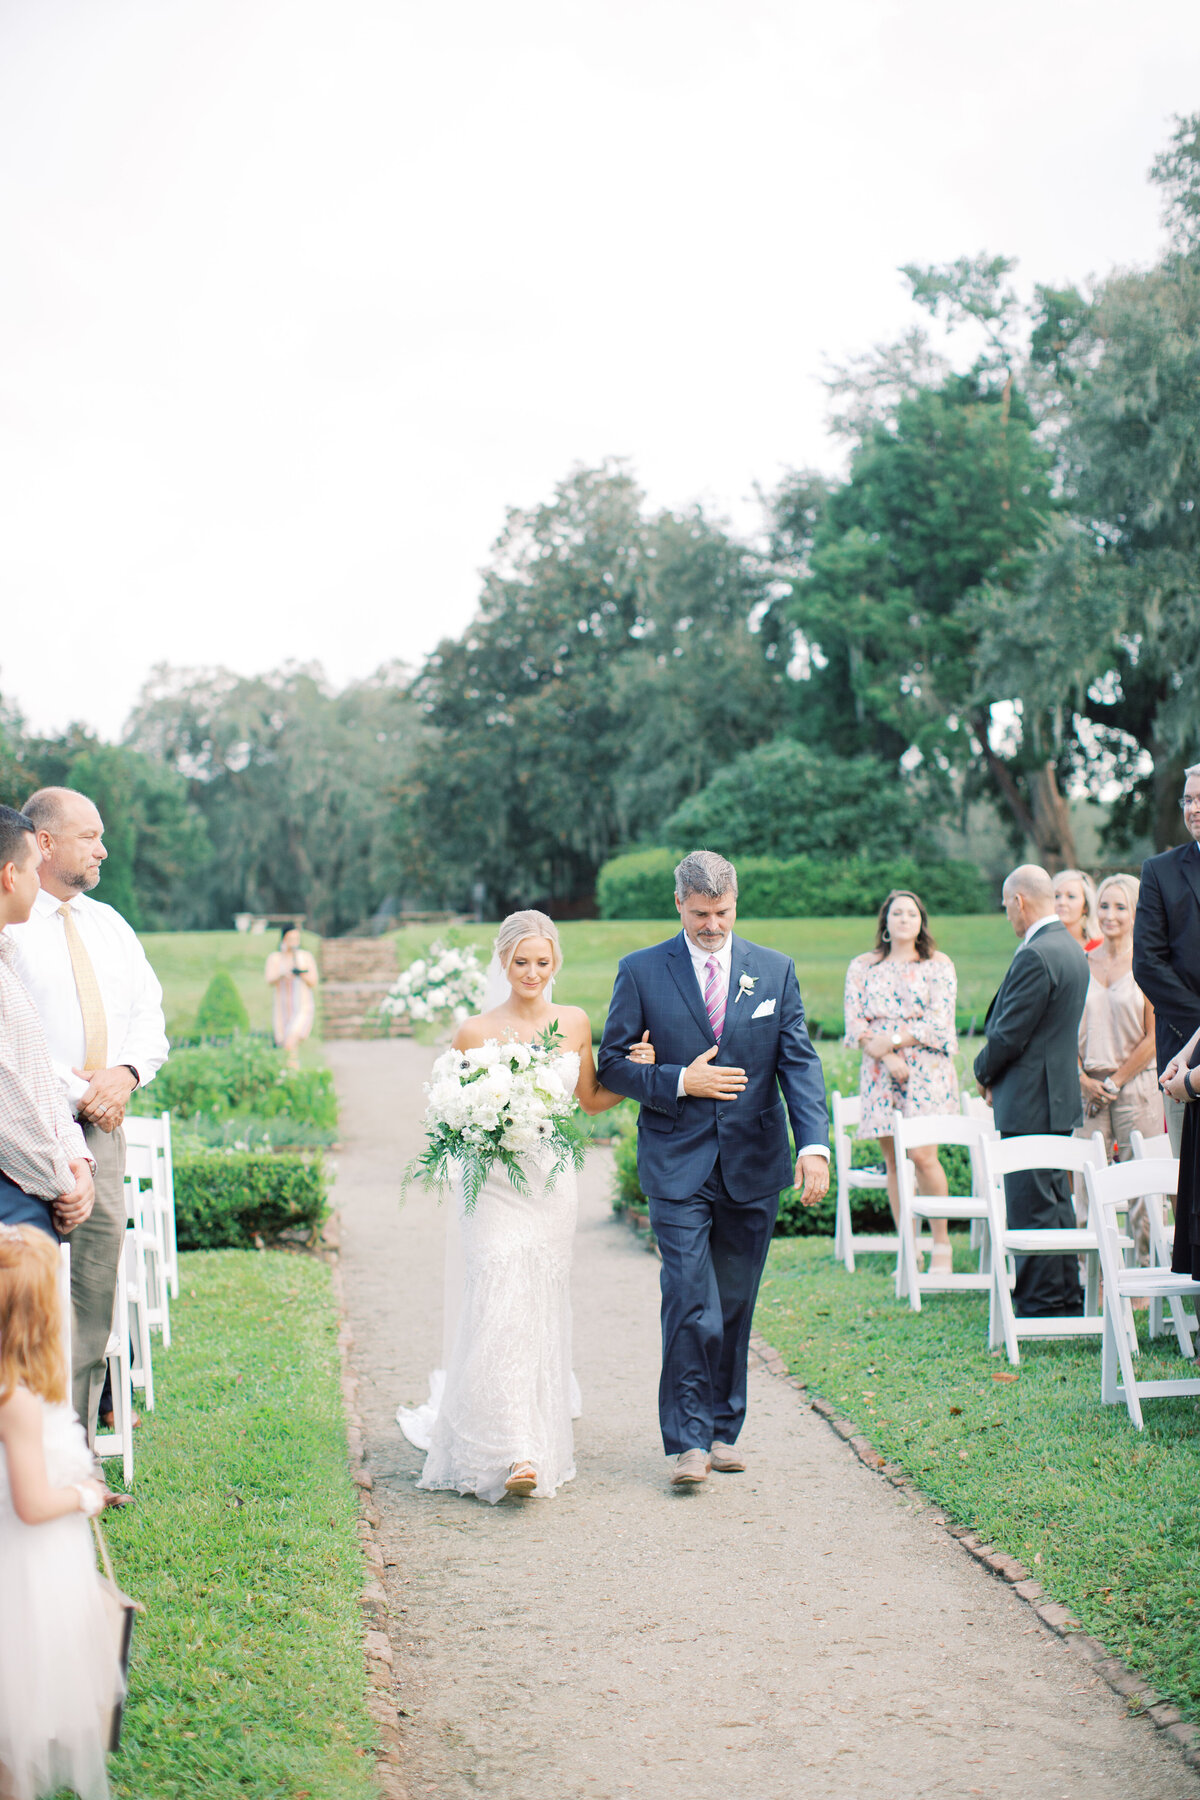 Melton_Wedding__Middleton_Place_Plantation_Charleston_South_Carolina_Jacksonville_Florida_Devon_Donnahoo_Photography__0580